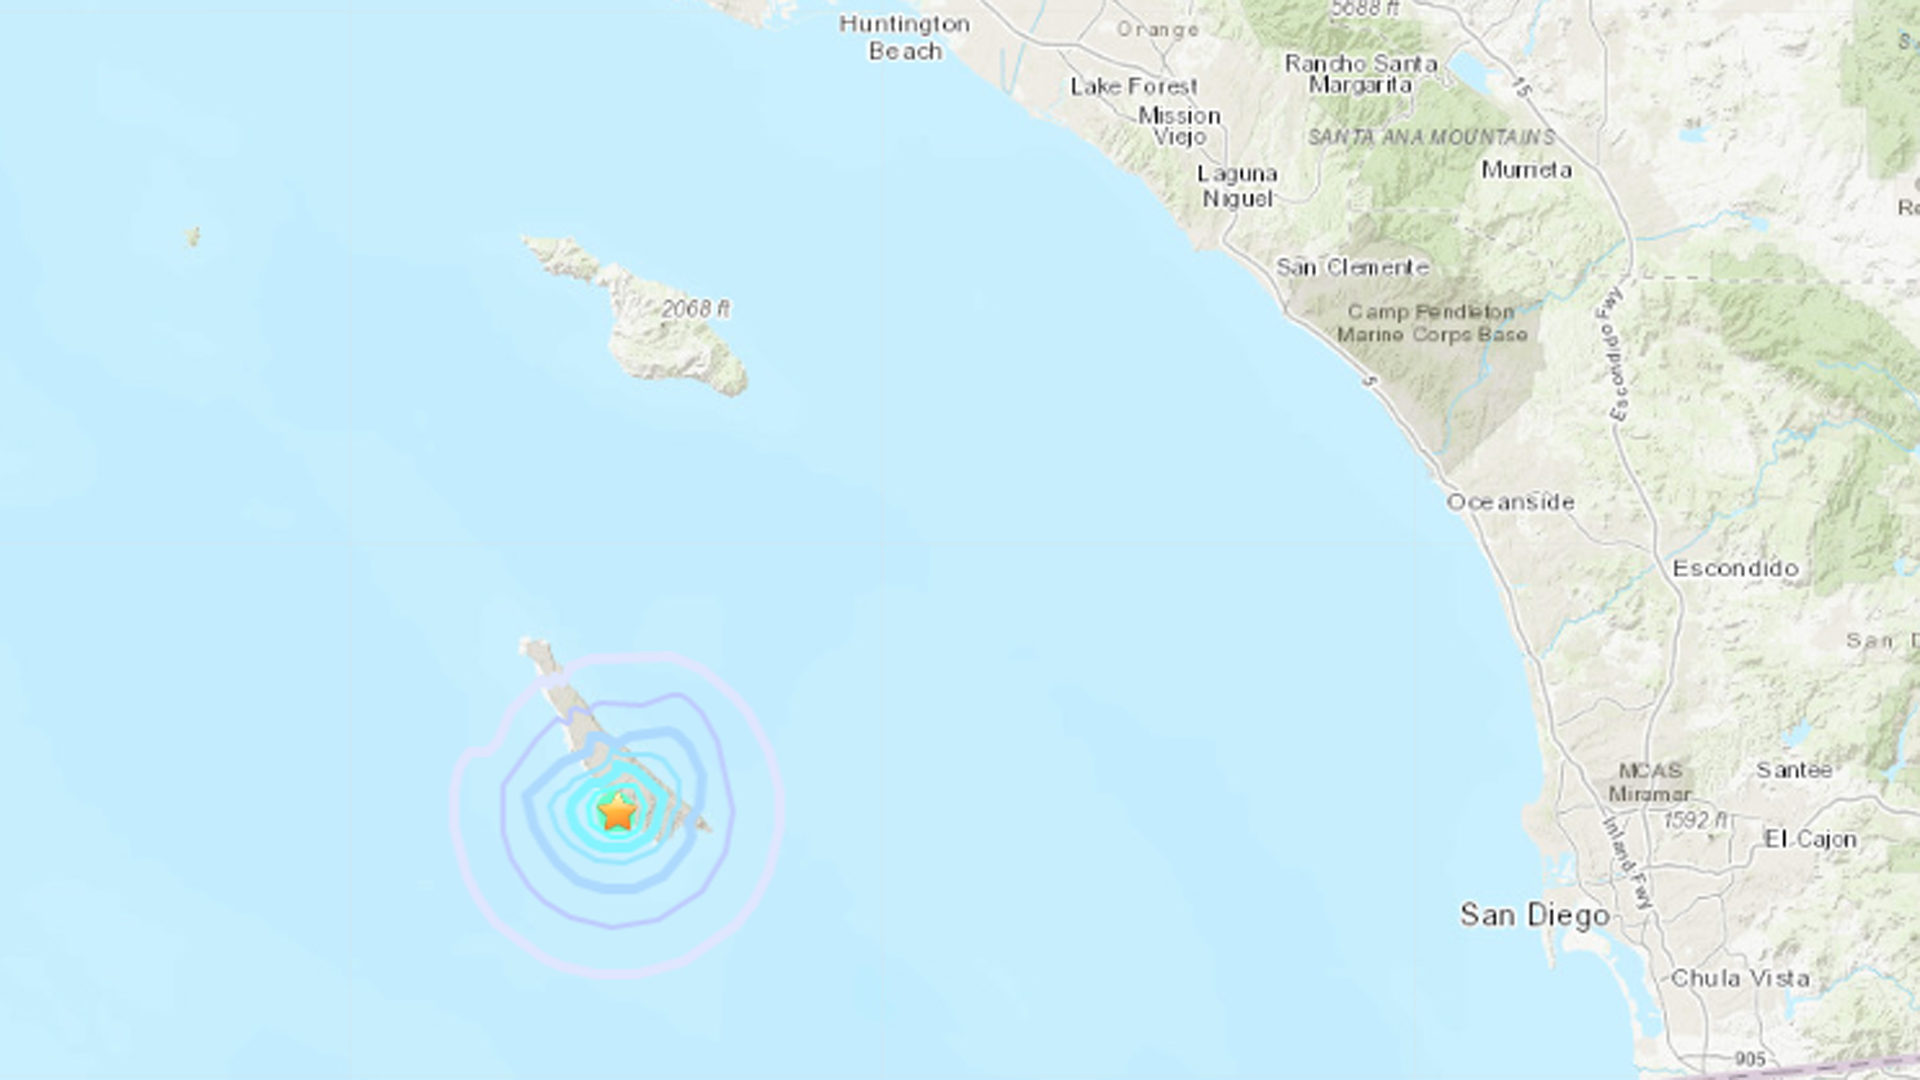 A magnitude 3.5 quake hit near San Clemente Island on June 6, 2019, one day after a pair of 4.3 temblors was centered in the area. (Credit: USGS)